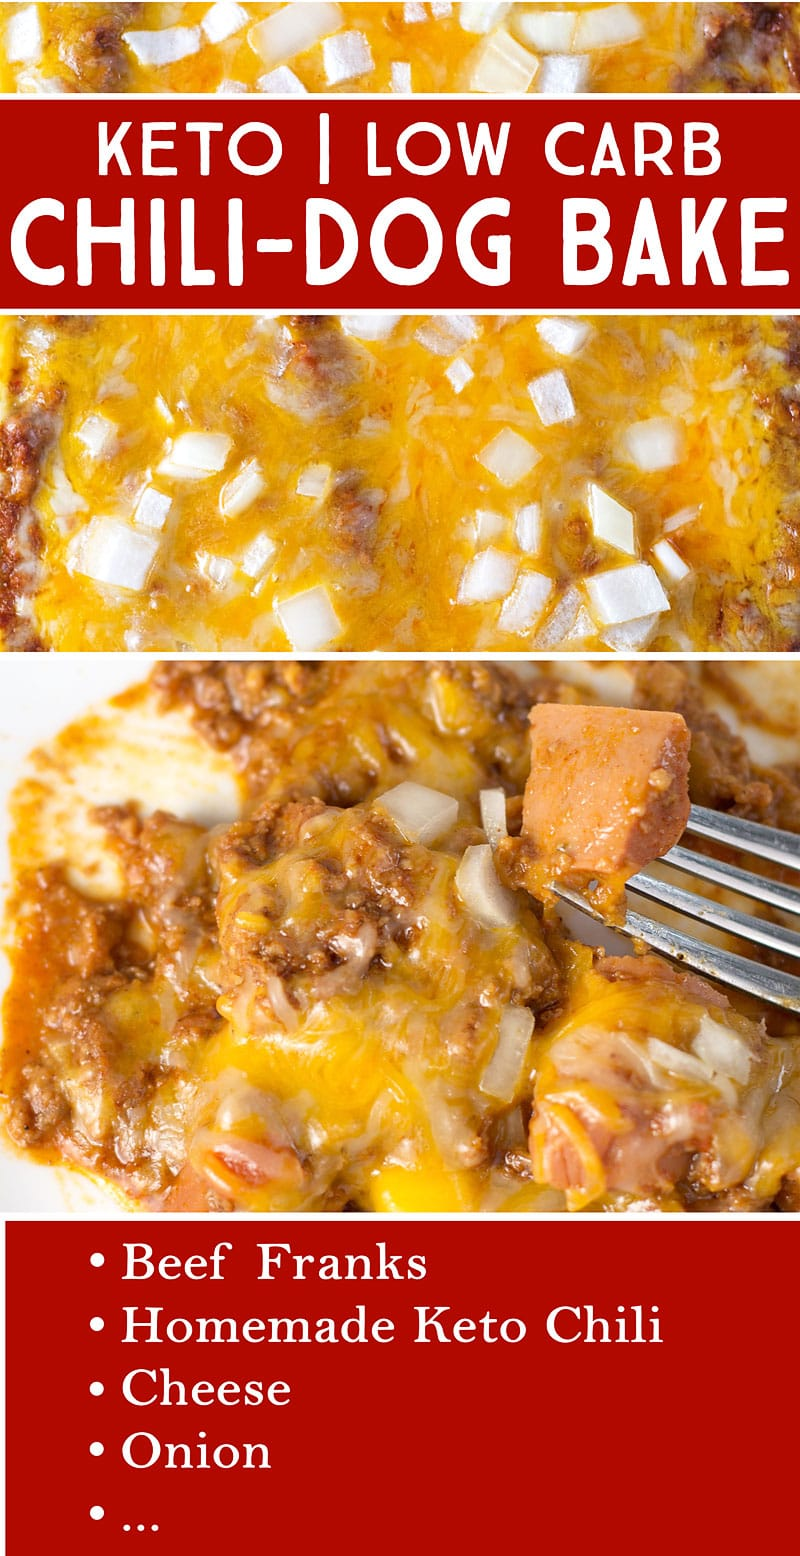 Keto Chili Dog Casserole